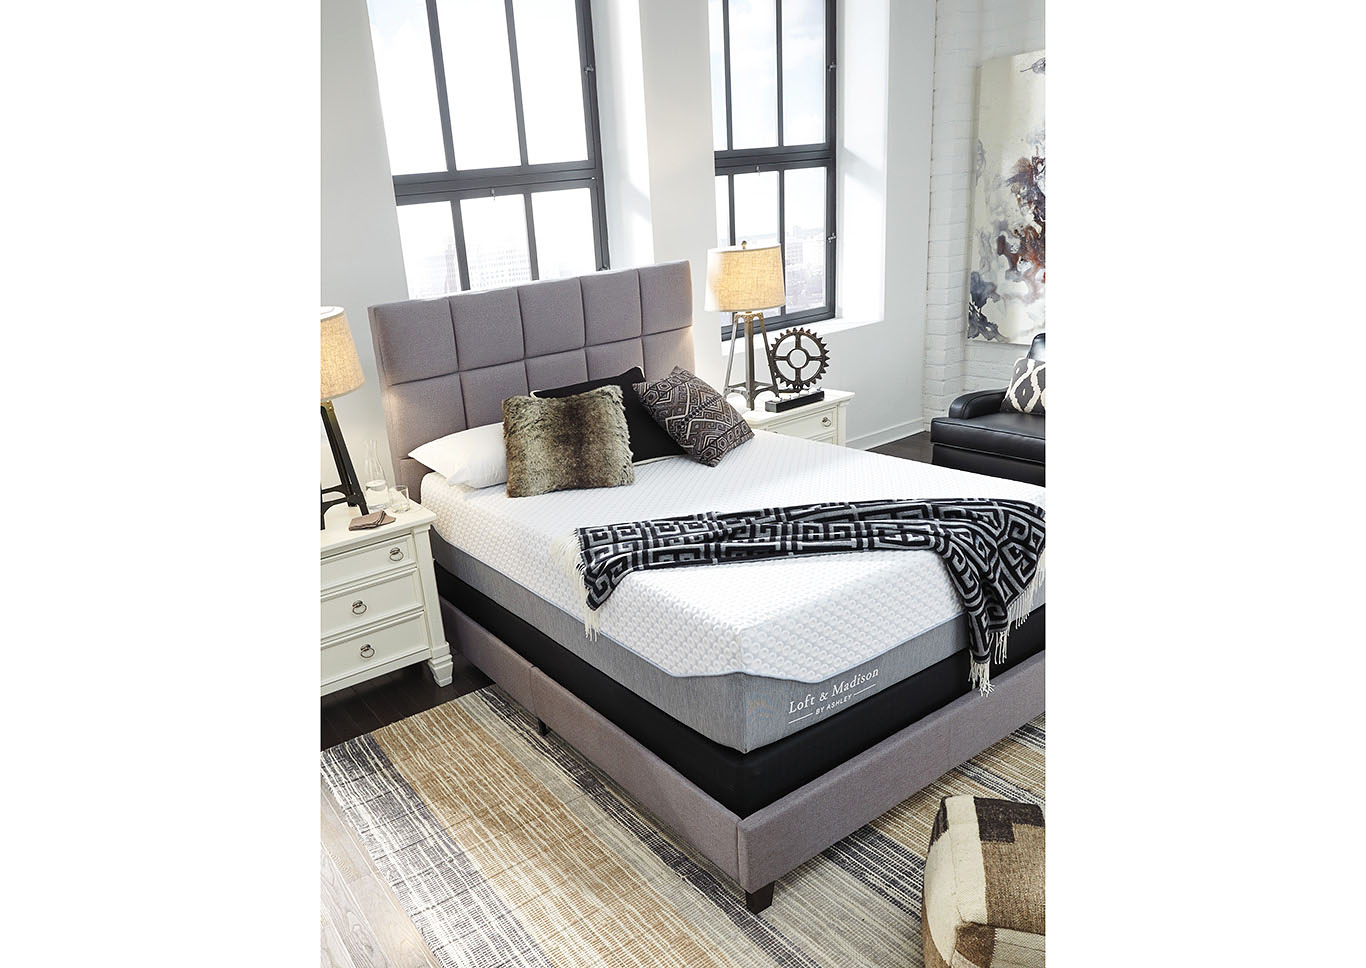 Loft and Madison 15 Plush White Queen Mattress,Sierra Sleep by Ashley